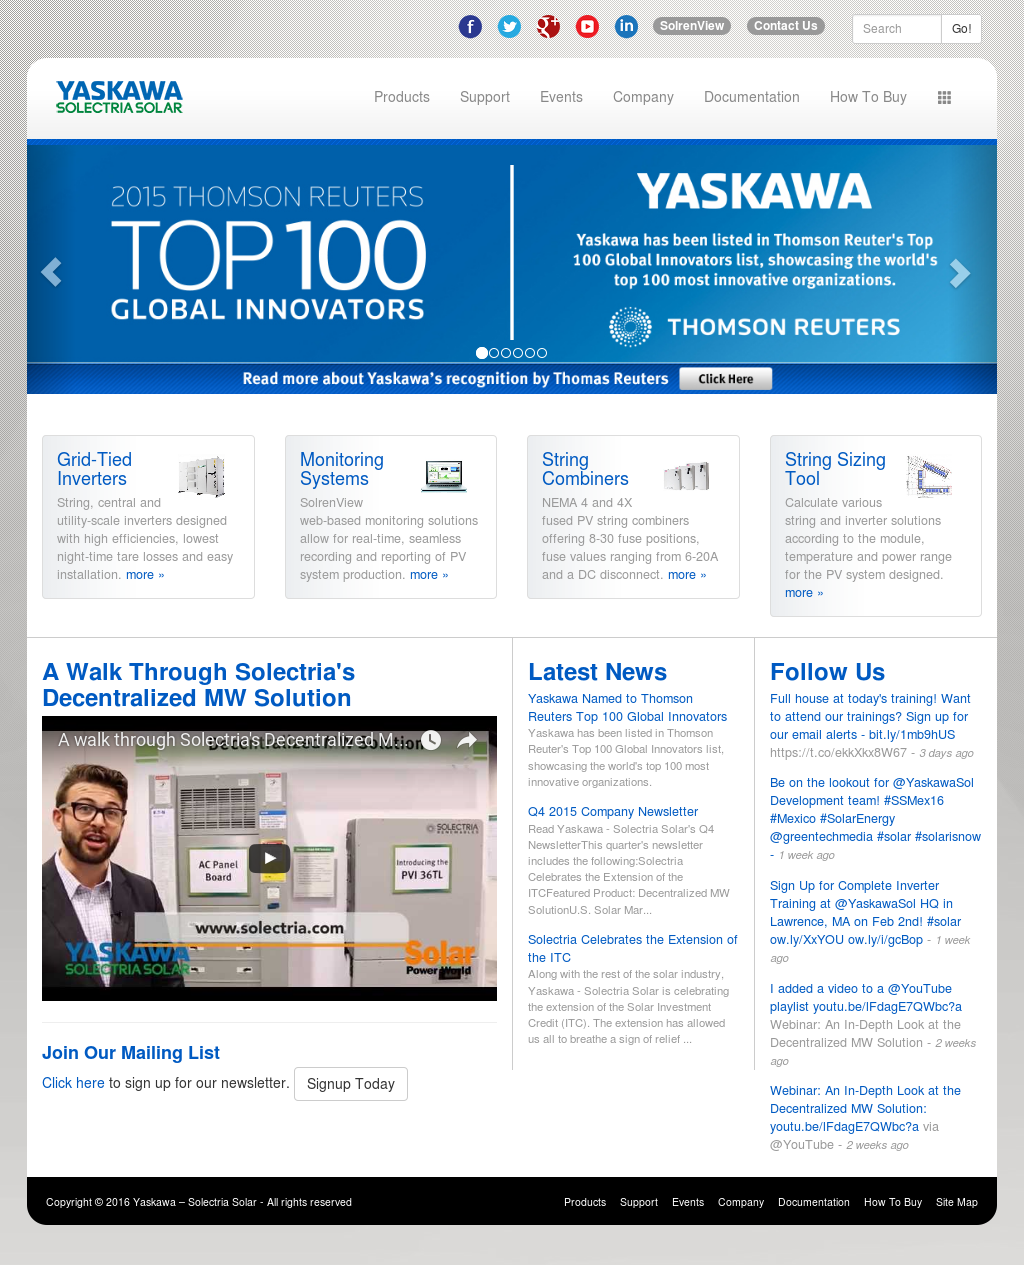 Yaskawa Solectria Solar Competitors, Revenue and Employees